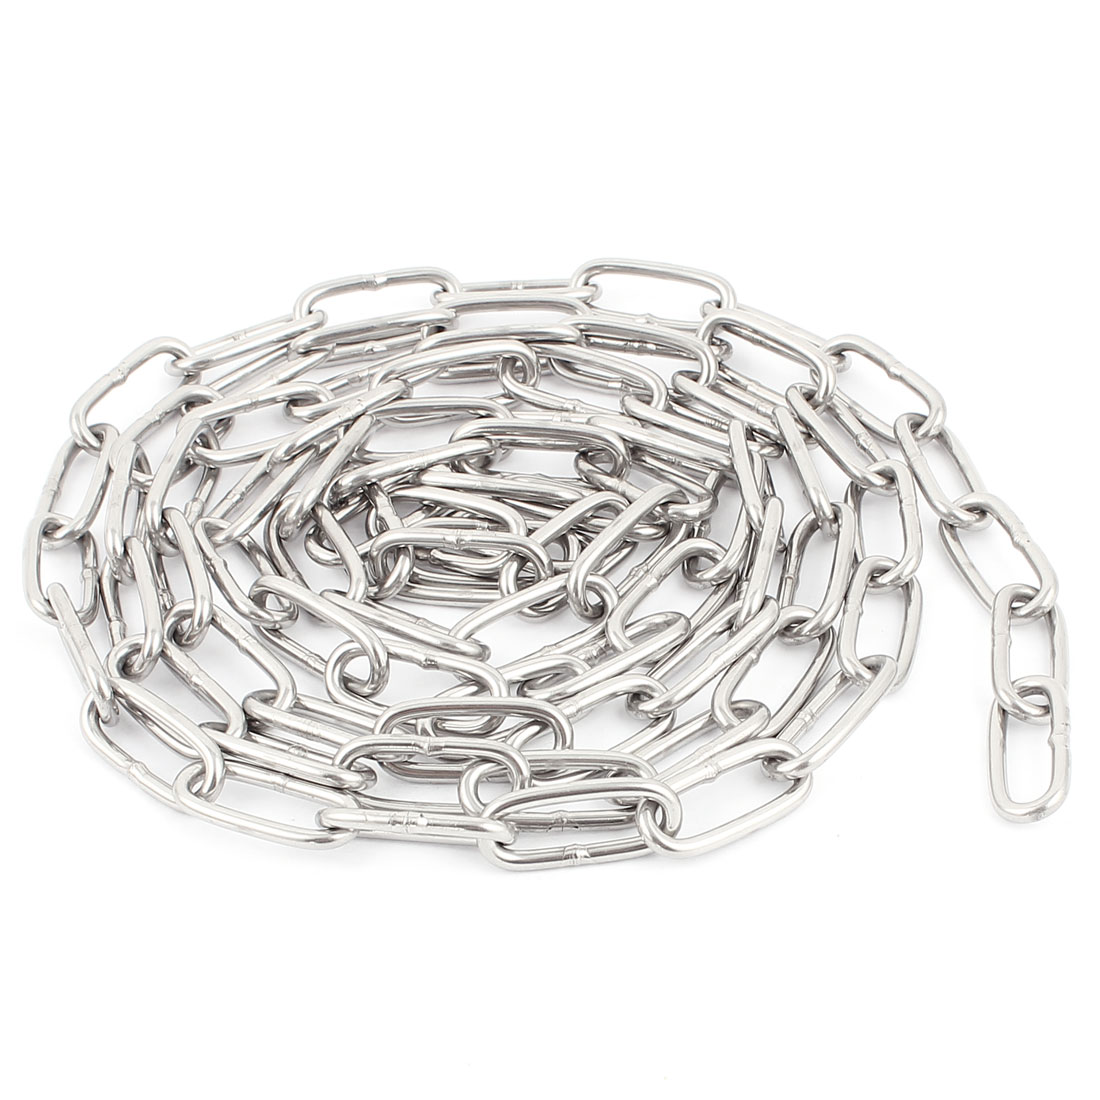 2 Meters Long 304 Stainless Steel Dog Tie Out Link Chain Silver Tone